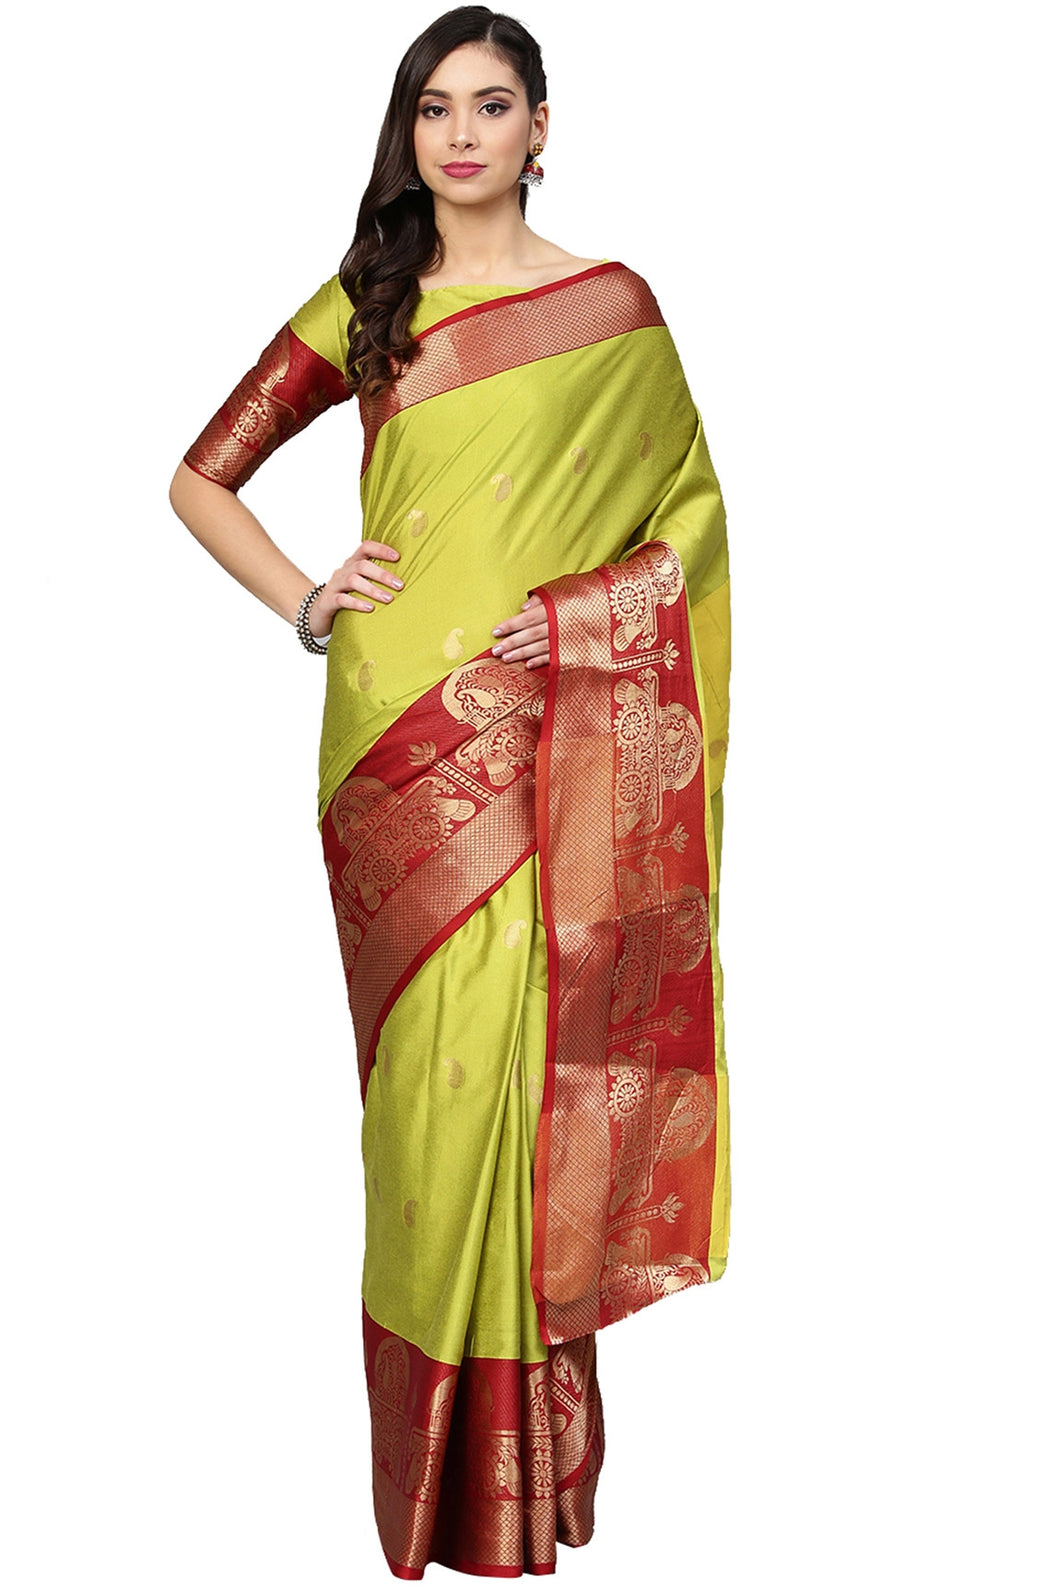 Bhelpuri Parrot Green and Red Silk Blend Saree